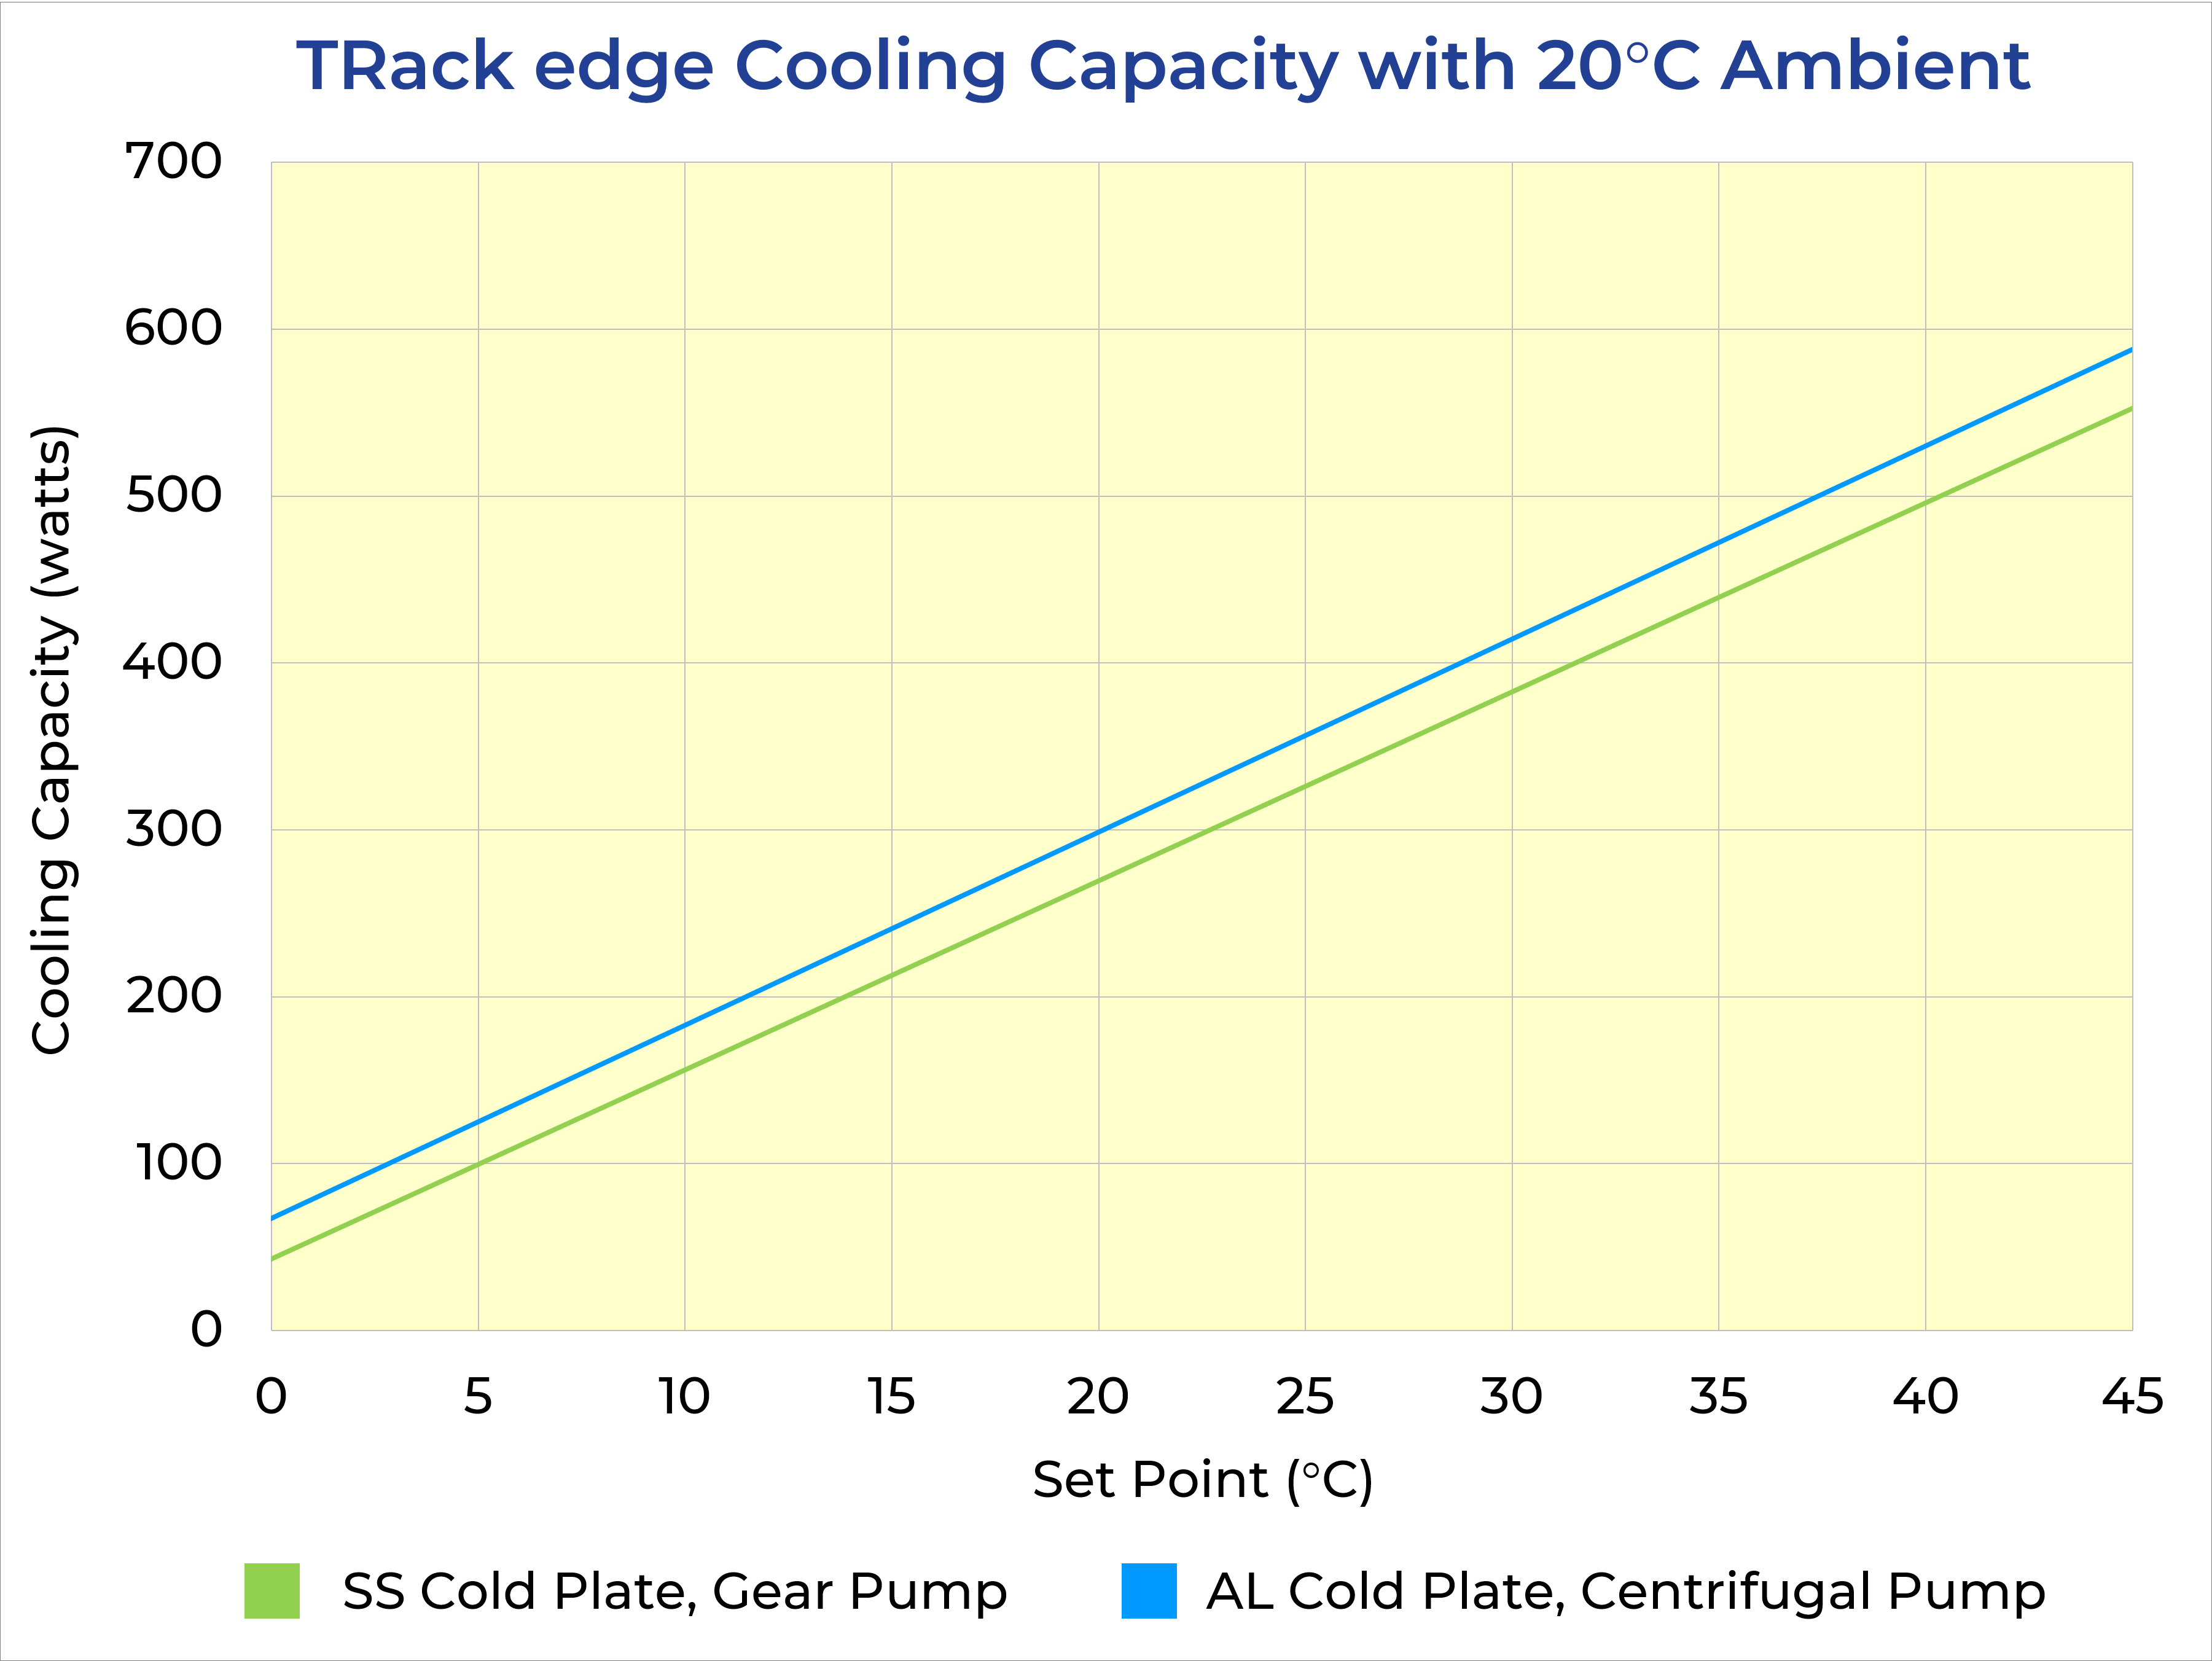 TRack edge Cooling Curves